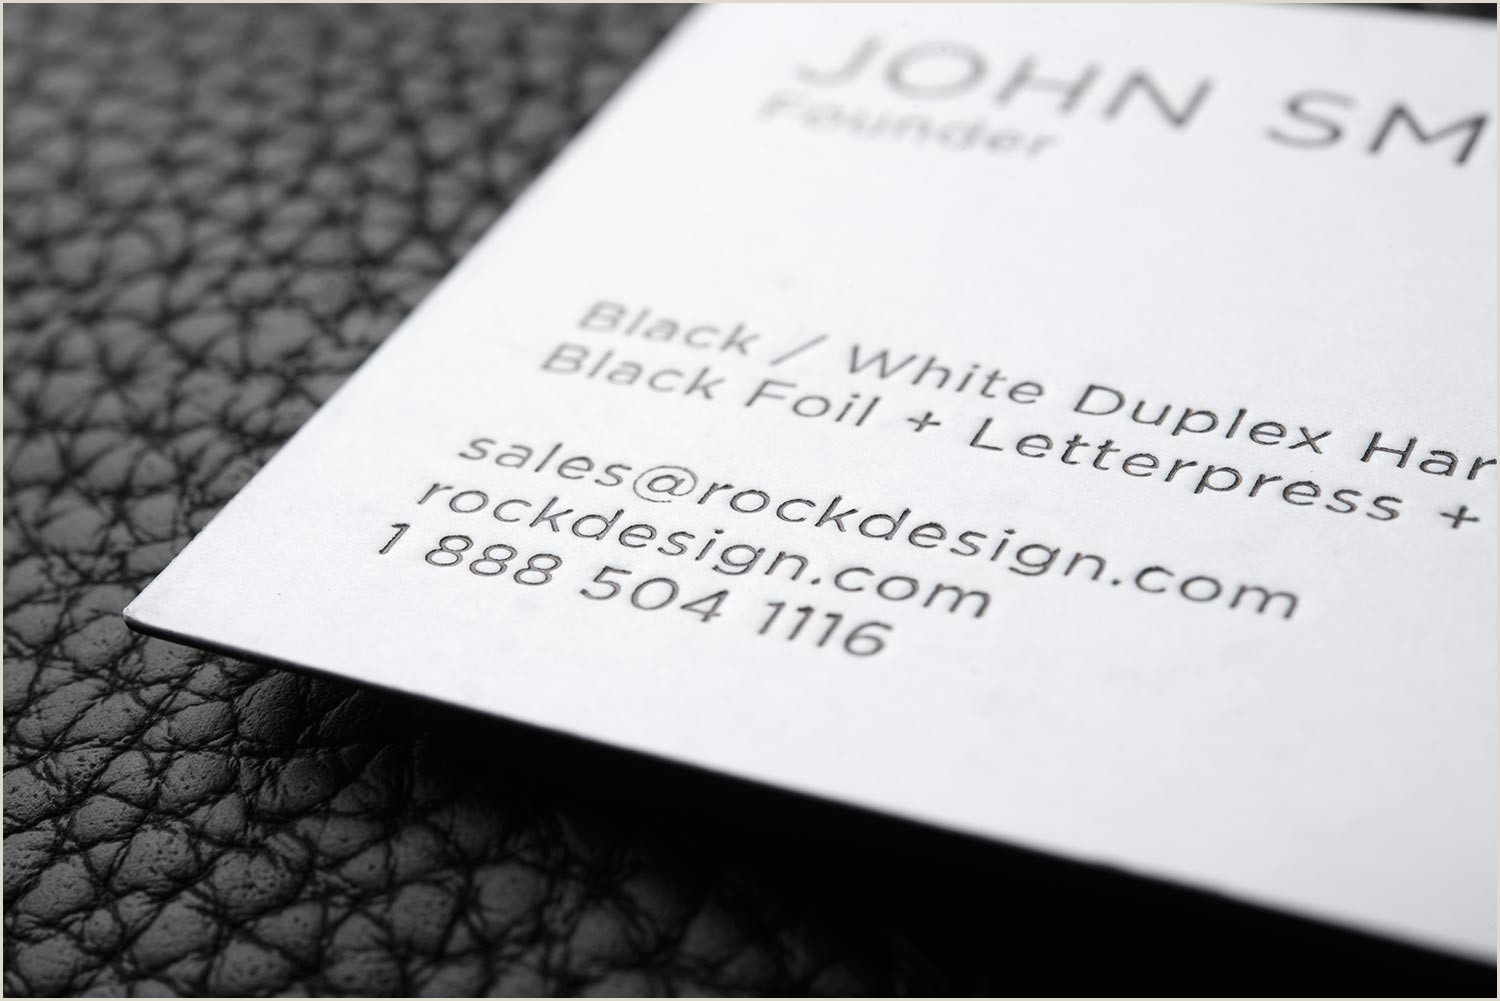 Black And White Business Card Design Free Bold And Creative Black And White Business Card